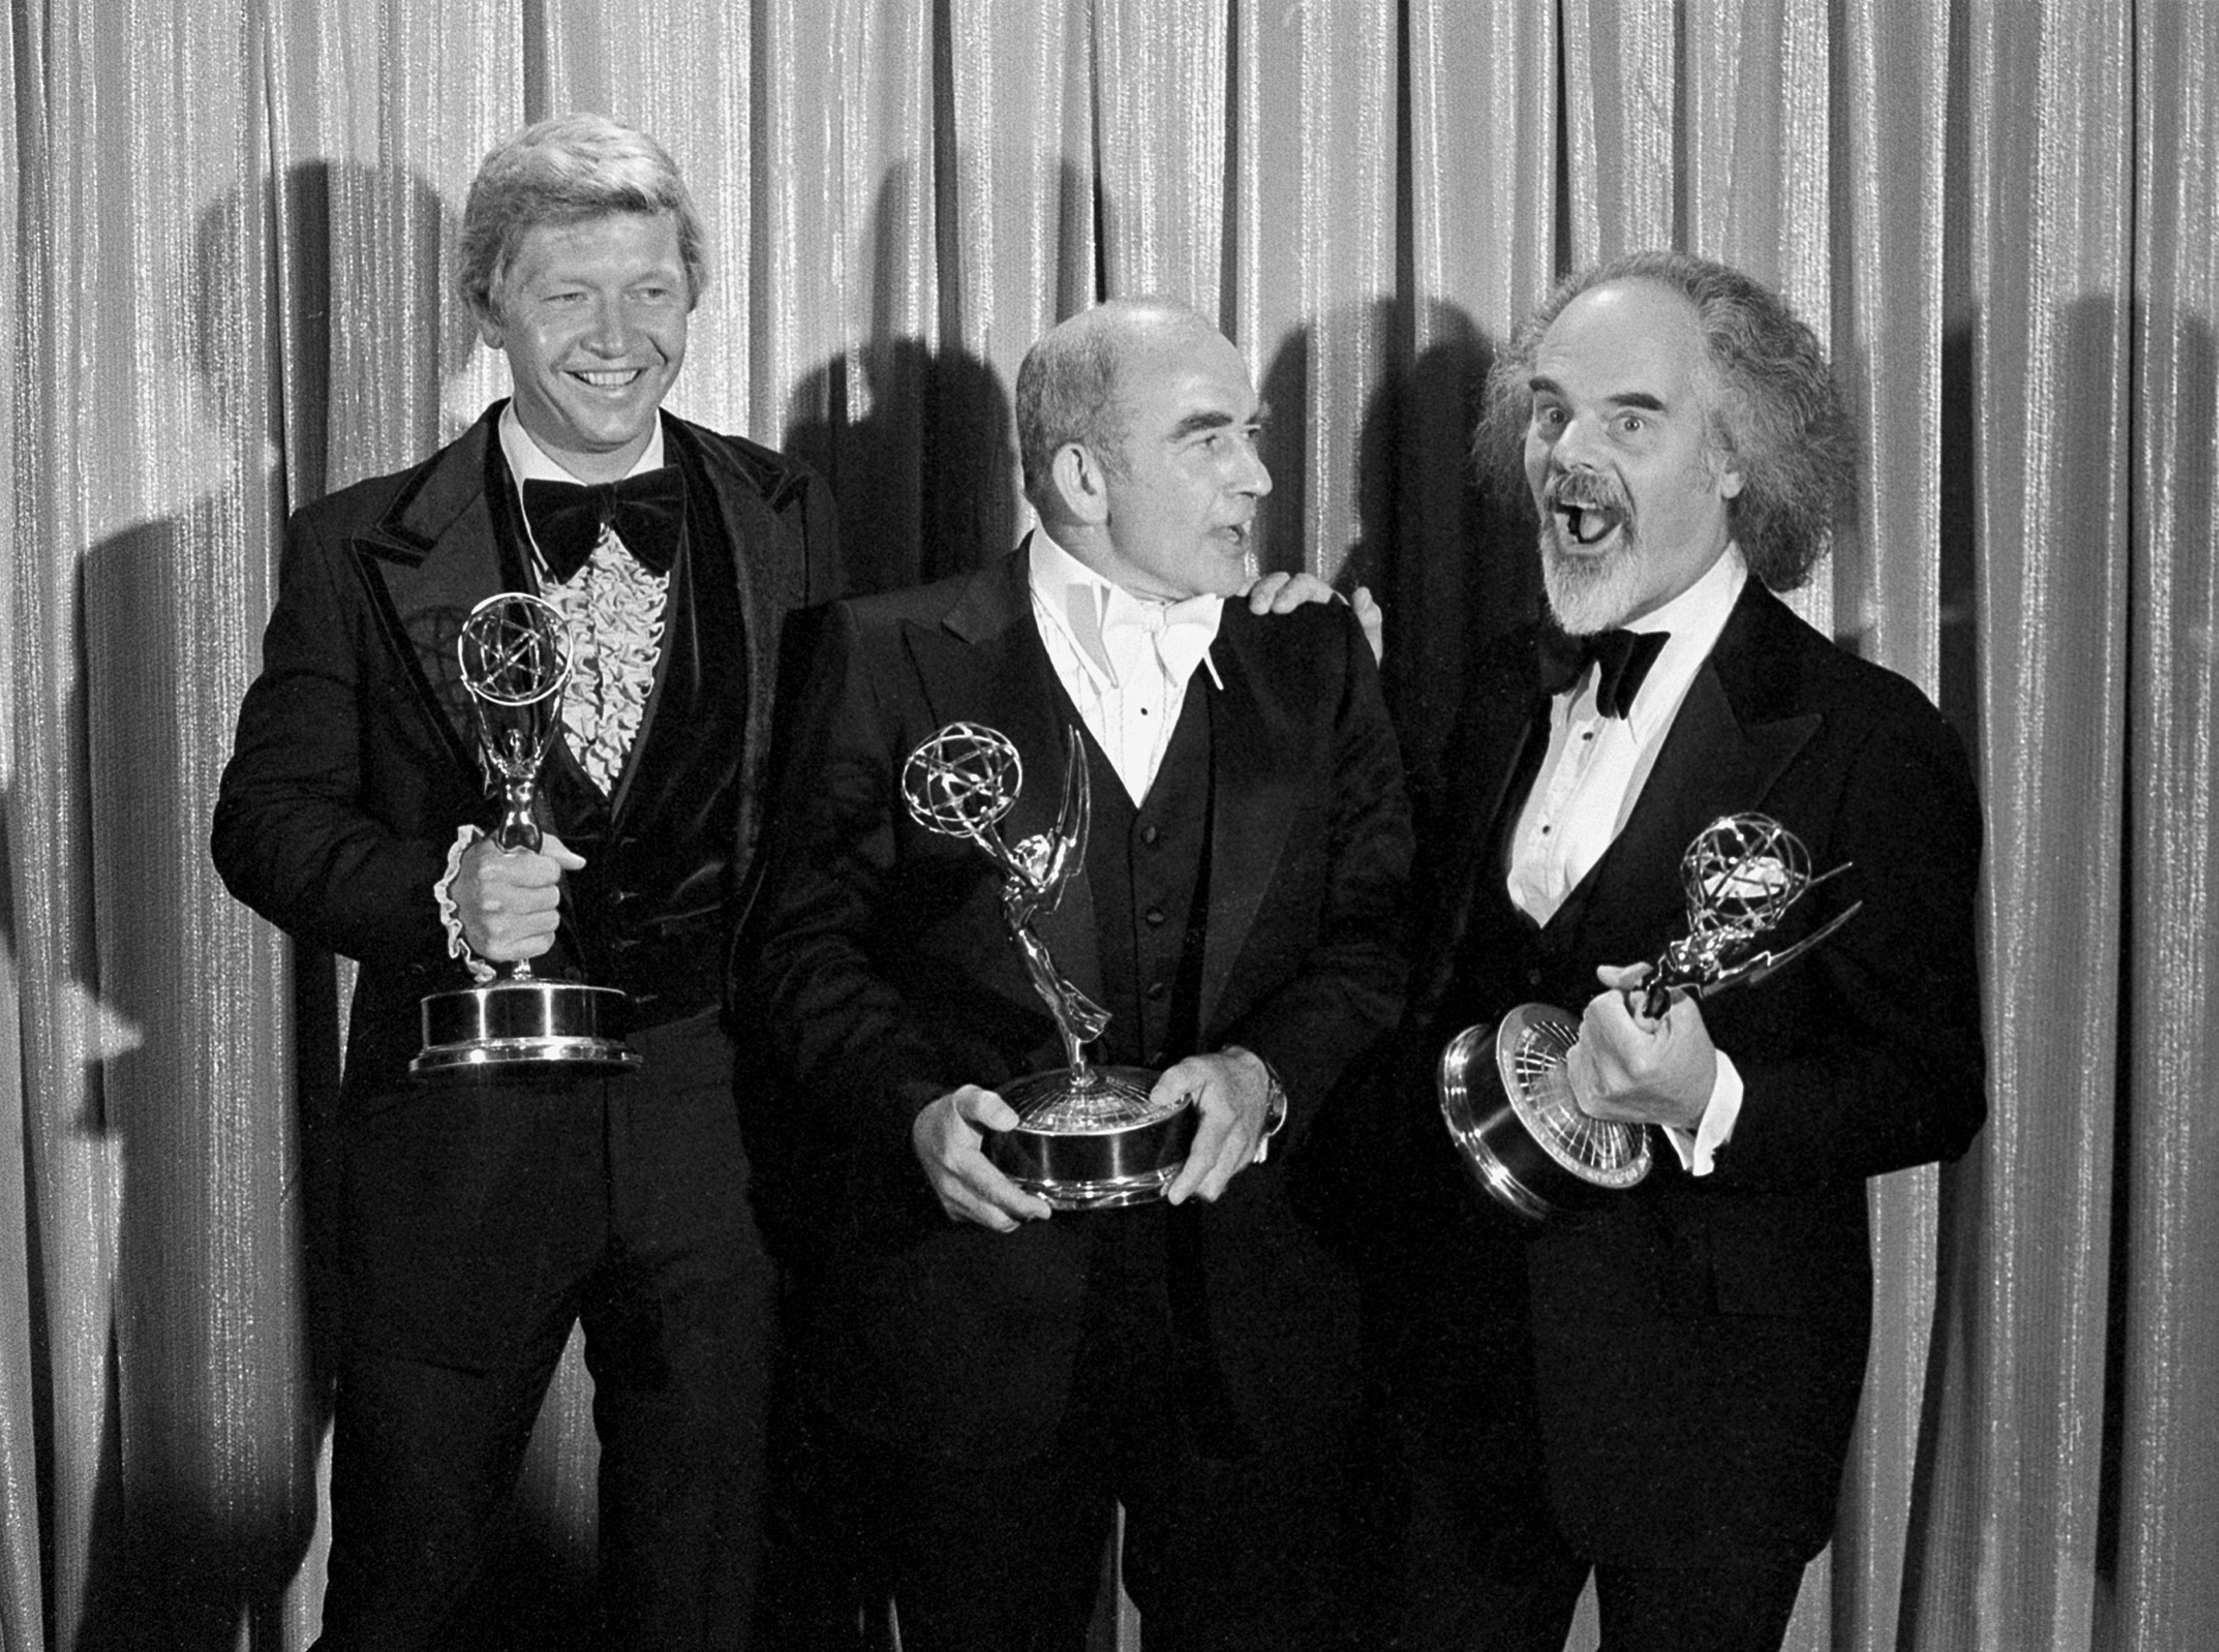 William Blinn, 'Brian's Song' and 'Roots' screenwriter, dead at 83